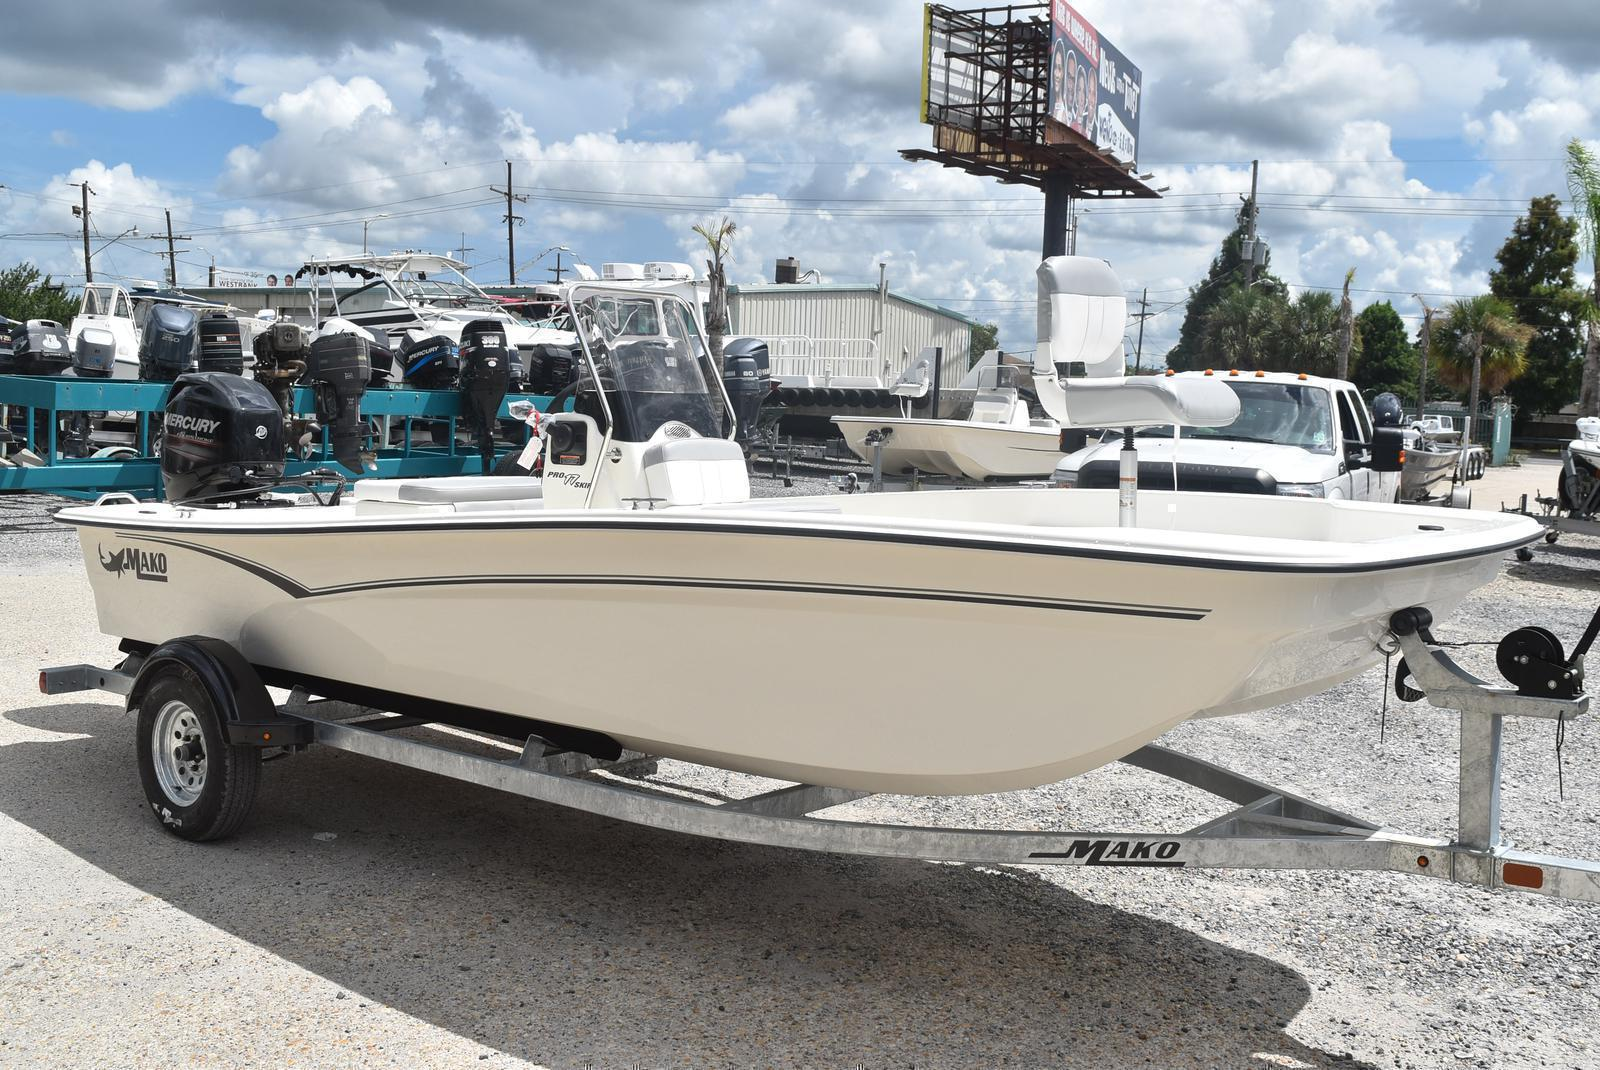 2020 Mako boat for sale, model of the boat is Pro Skiff 17, 75 ELPT & Image # 700 of 702